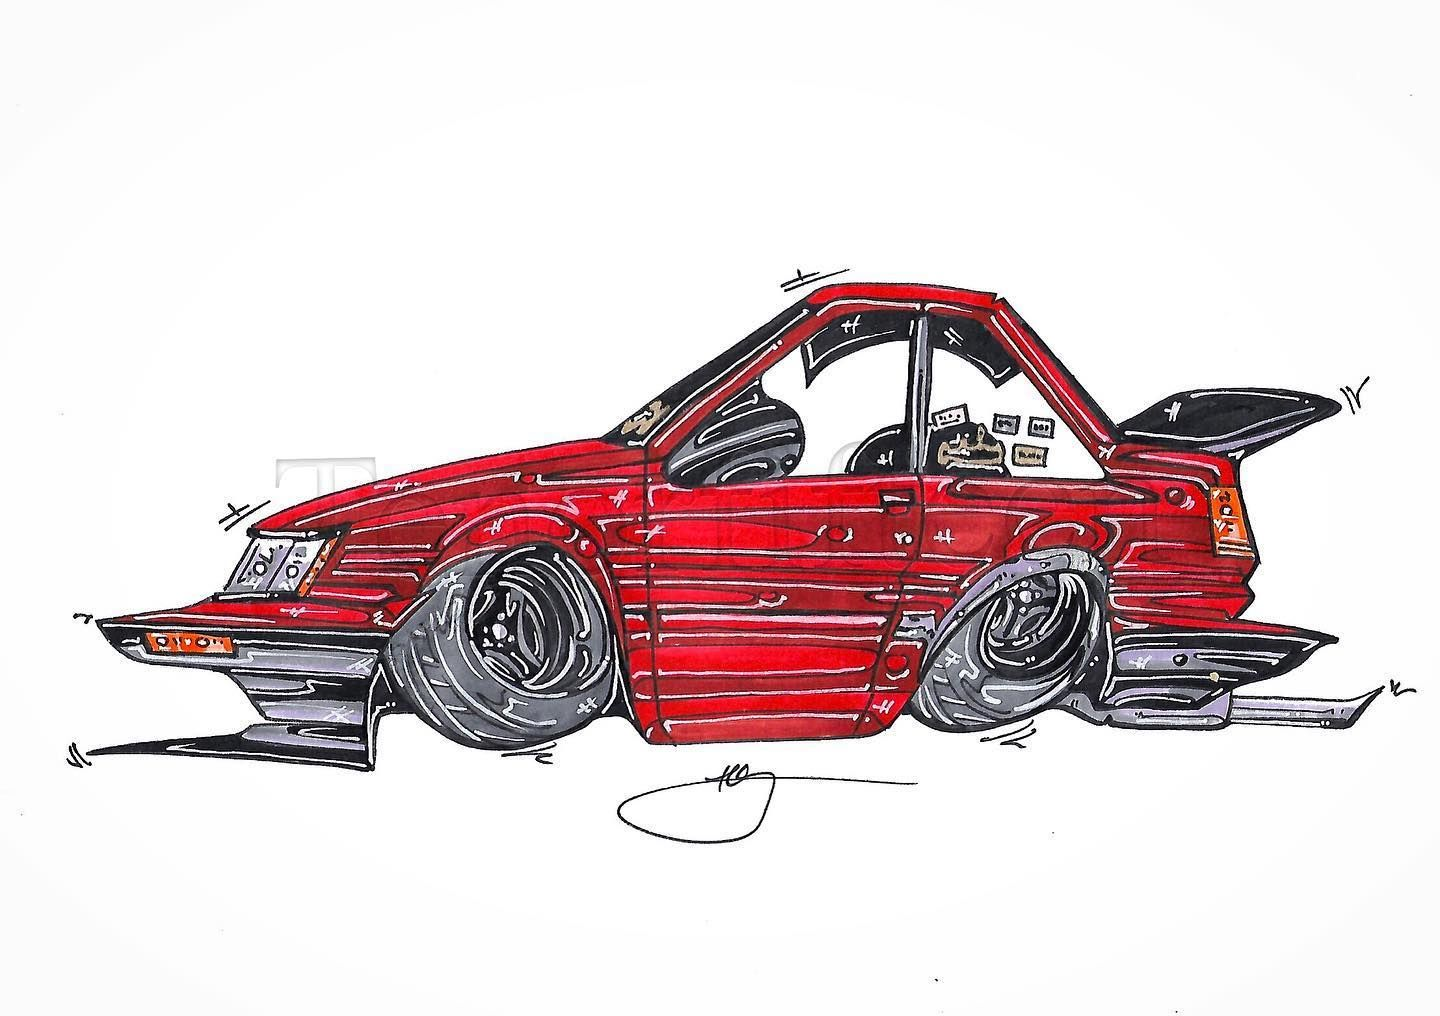 @jacobxpeck s rad #echassis #4age #ae86 #corolla #hachiroku on #advana3a s as a #drawing #cardrawing inquire for pricing and commissions hit up @deathcliqueprinting.co for some rad stickers aswell